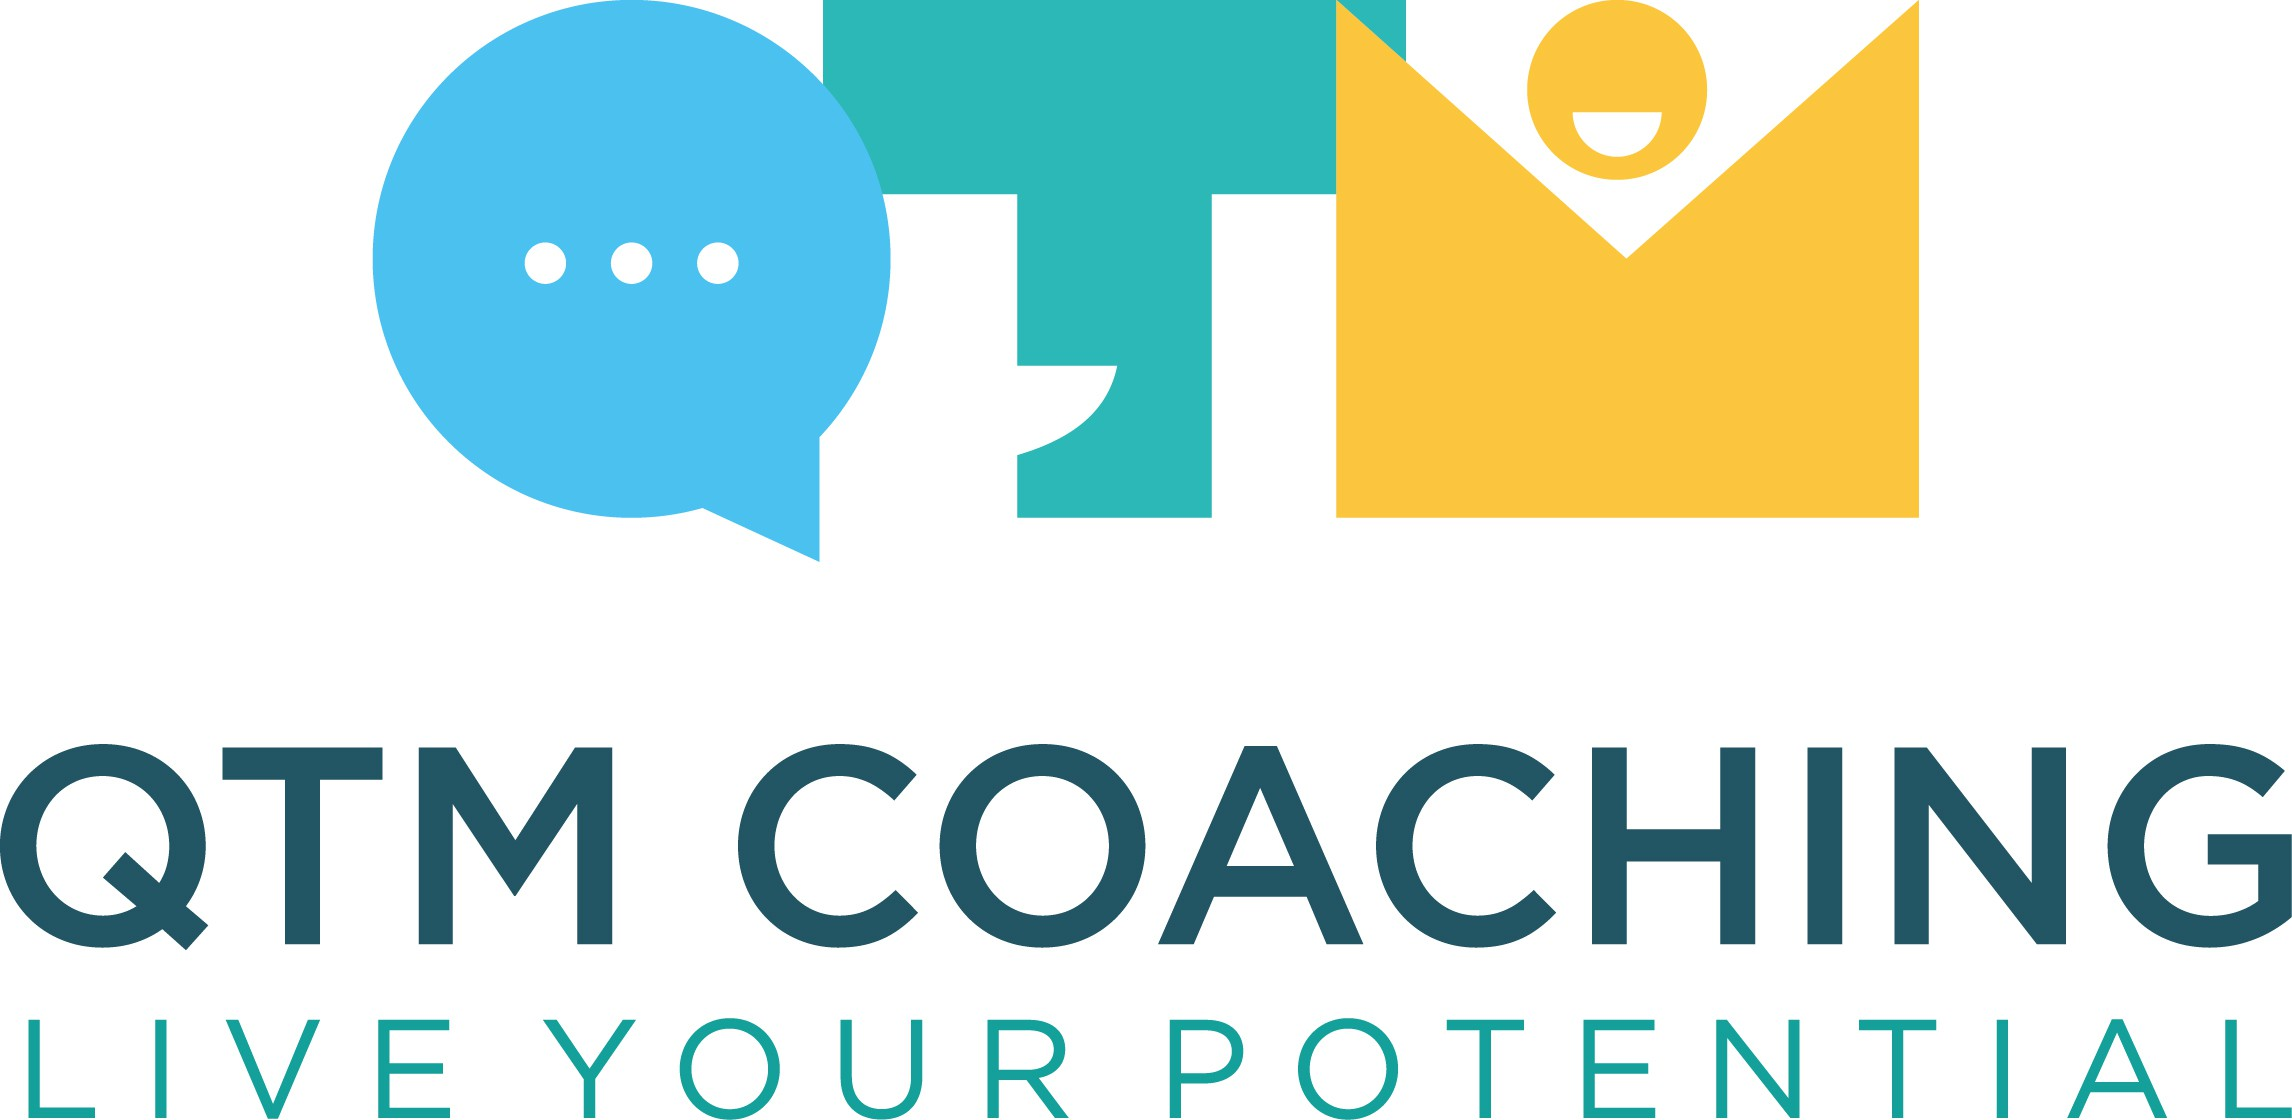 Branding for coaching practice - today and tomorrow's leaders